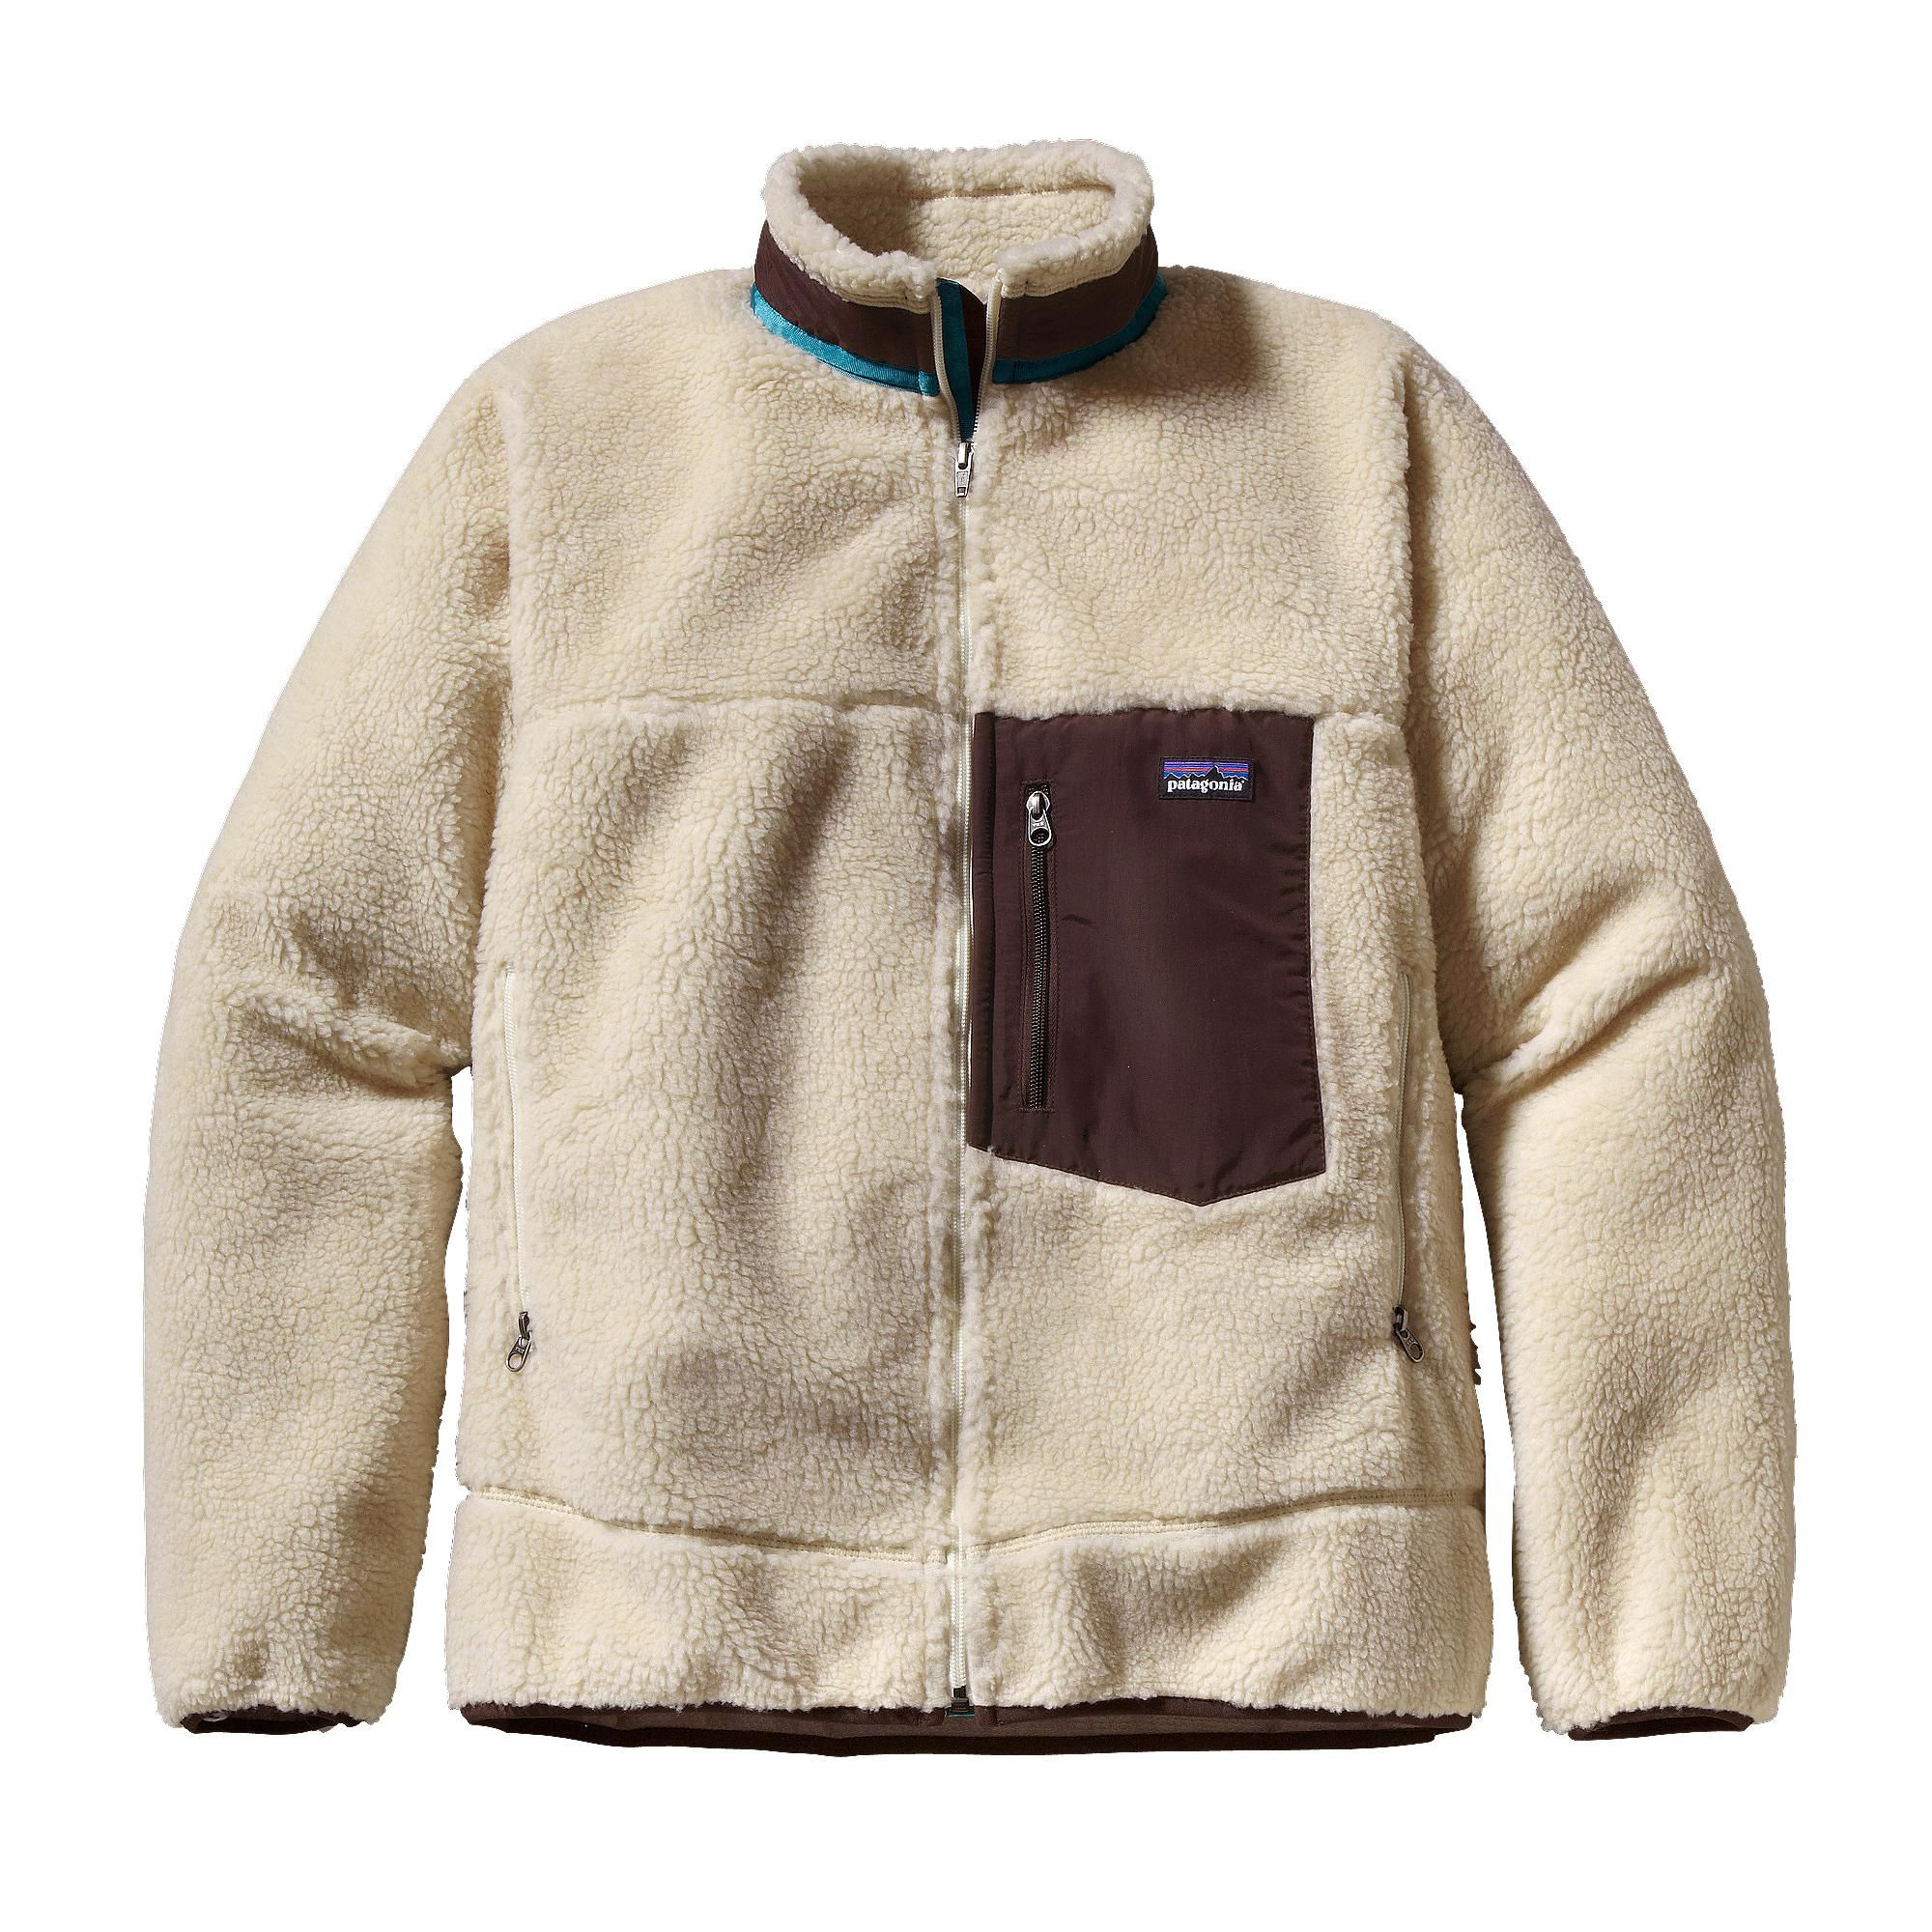 193b1372d35bac Patagonia Men s Classic Retro-X Jacket - The windproof Classic Retro-X is  our enduring